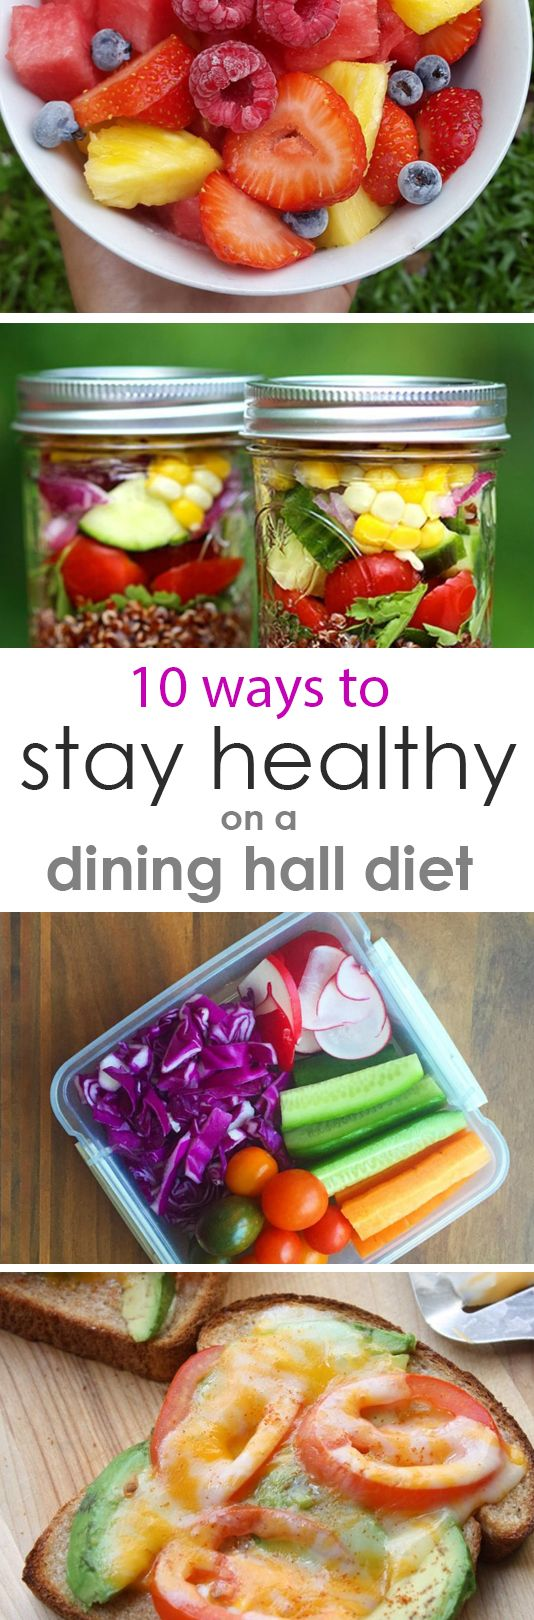 Daily diet for good health - 10 Ways To Stay Healthy On A College Dining Hall Diet